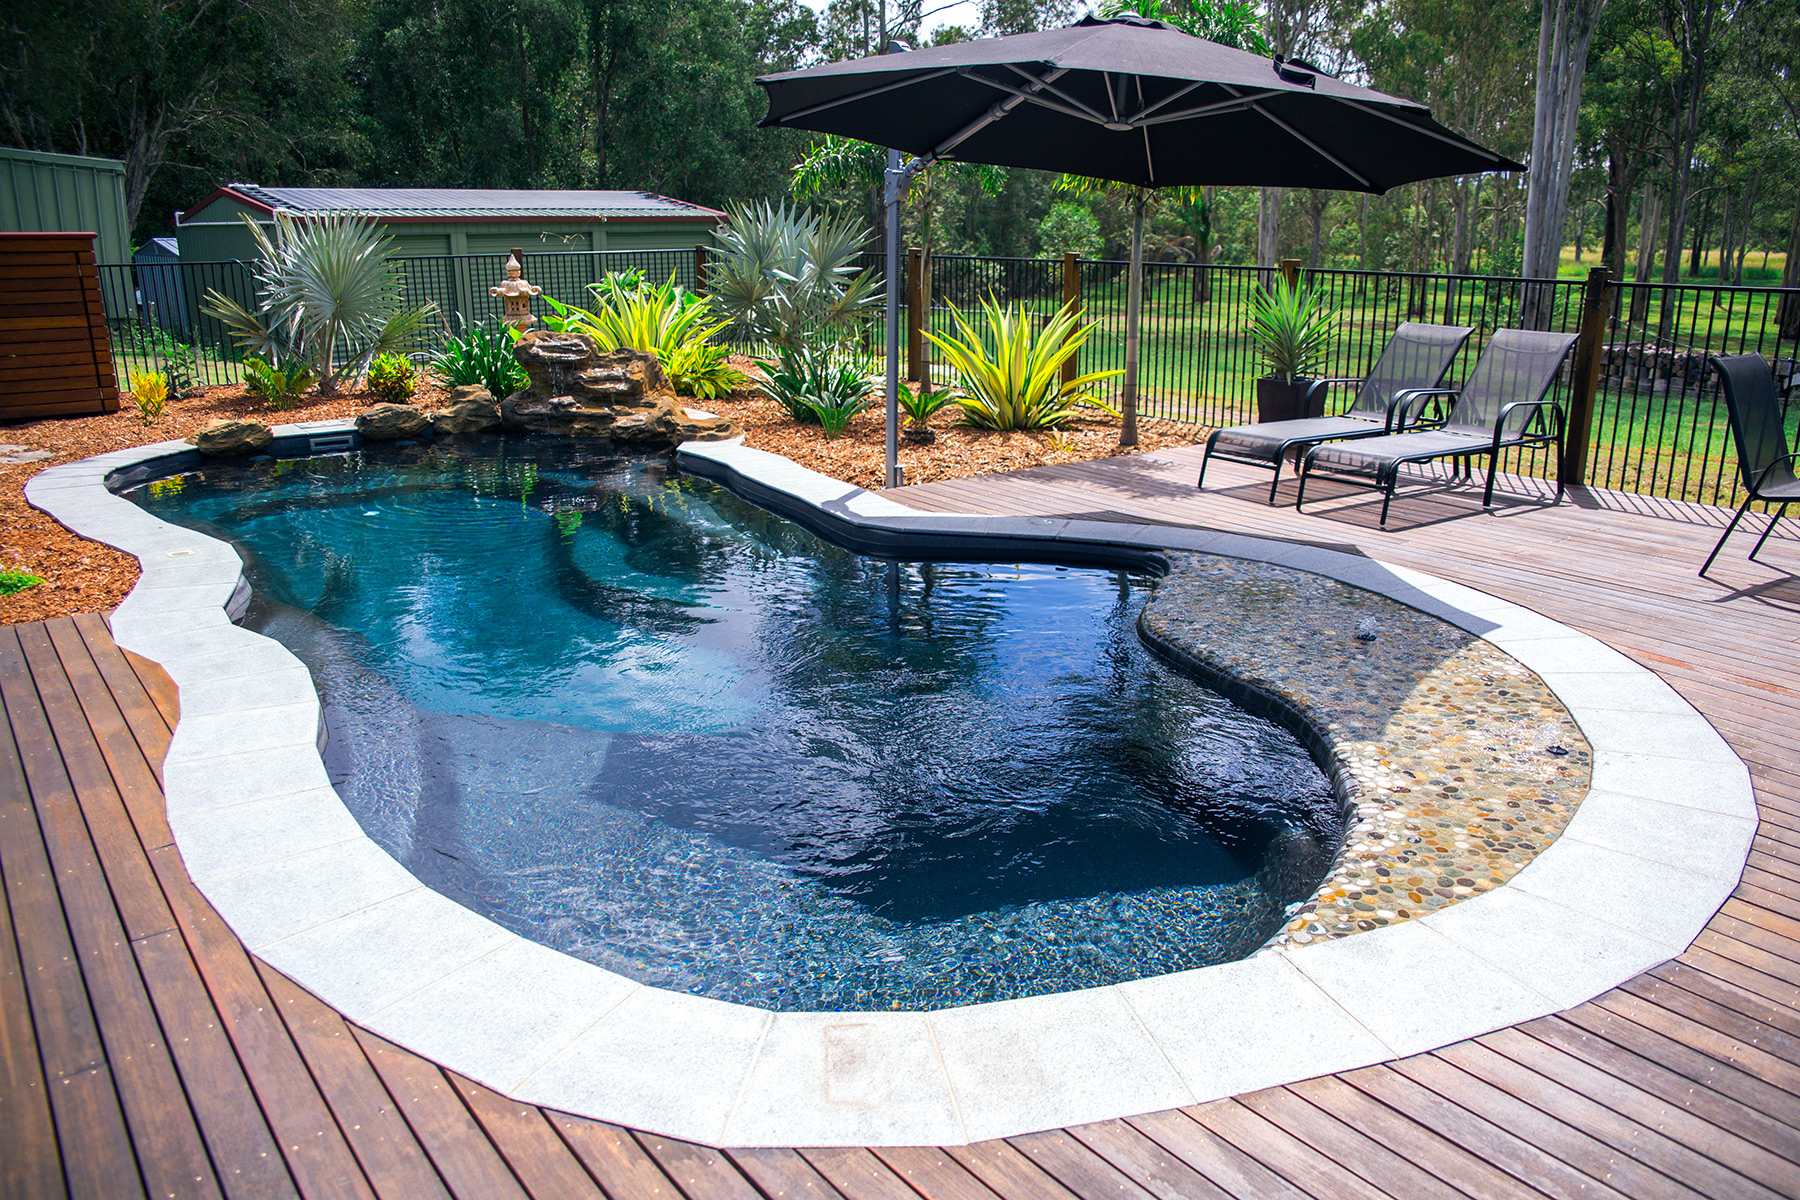 Why You Should Install a Swimming Pool in Potomac - Premier Pools & Spas